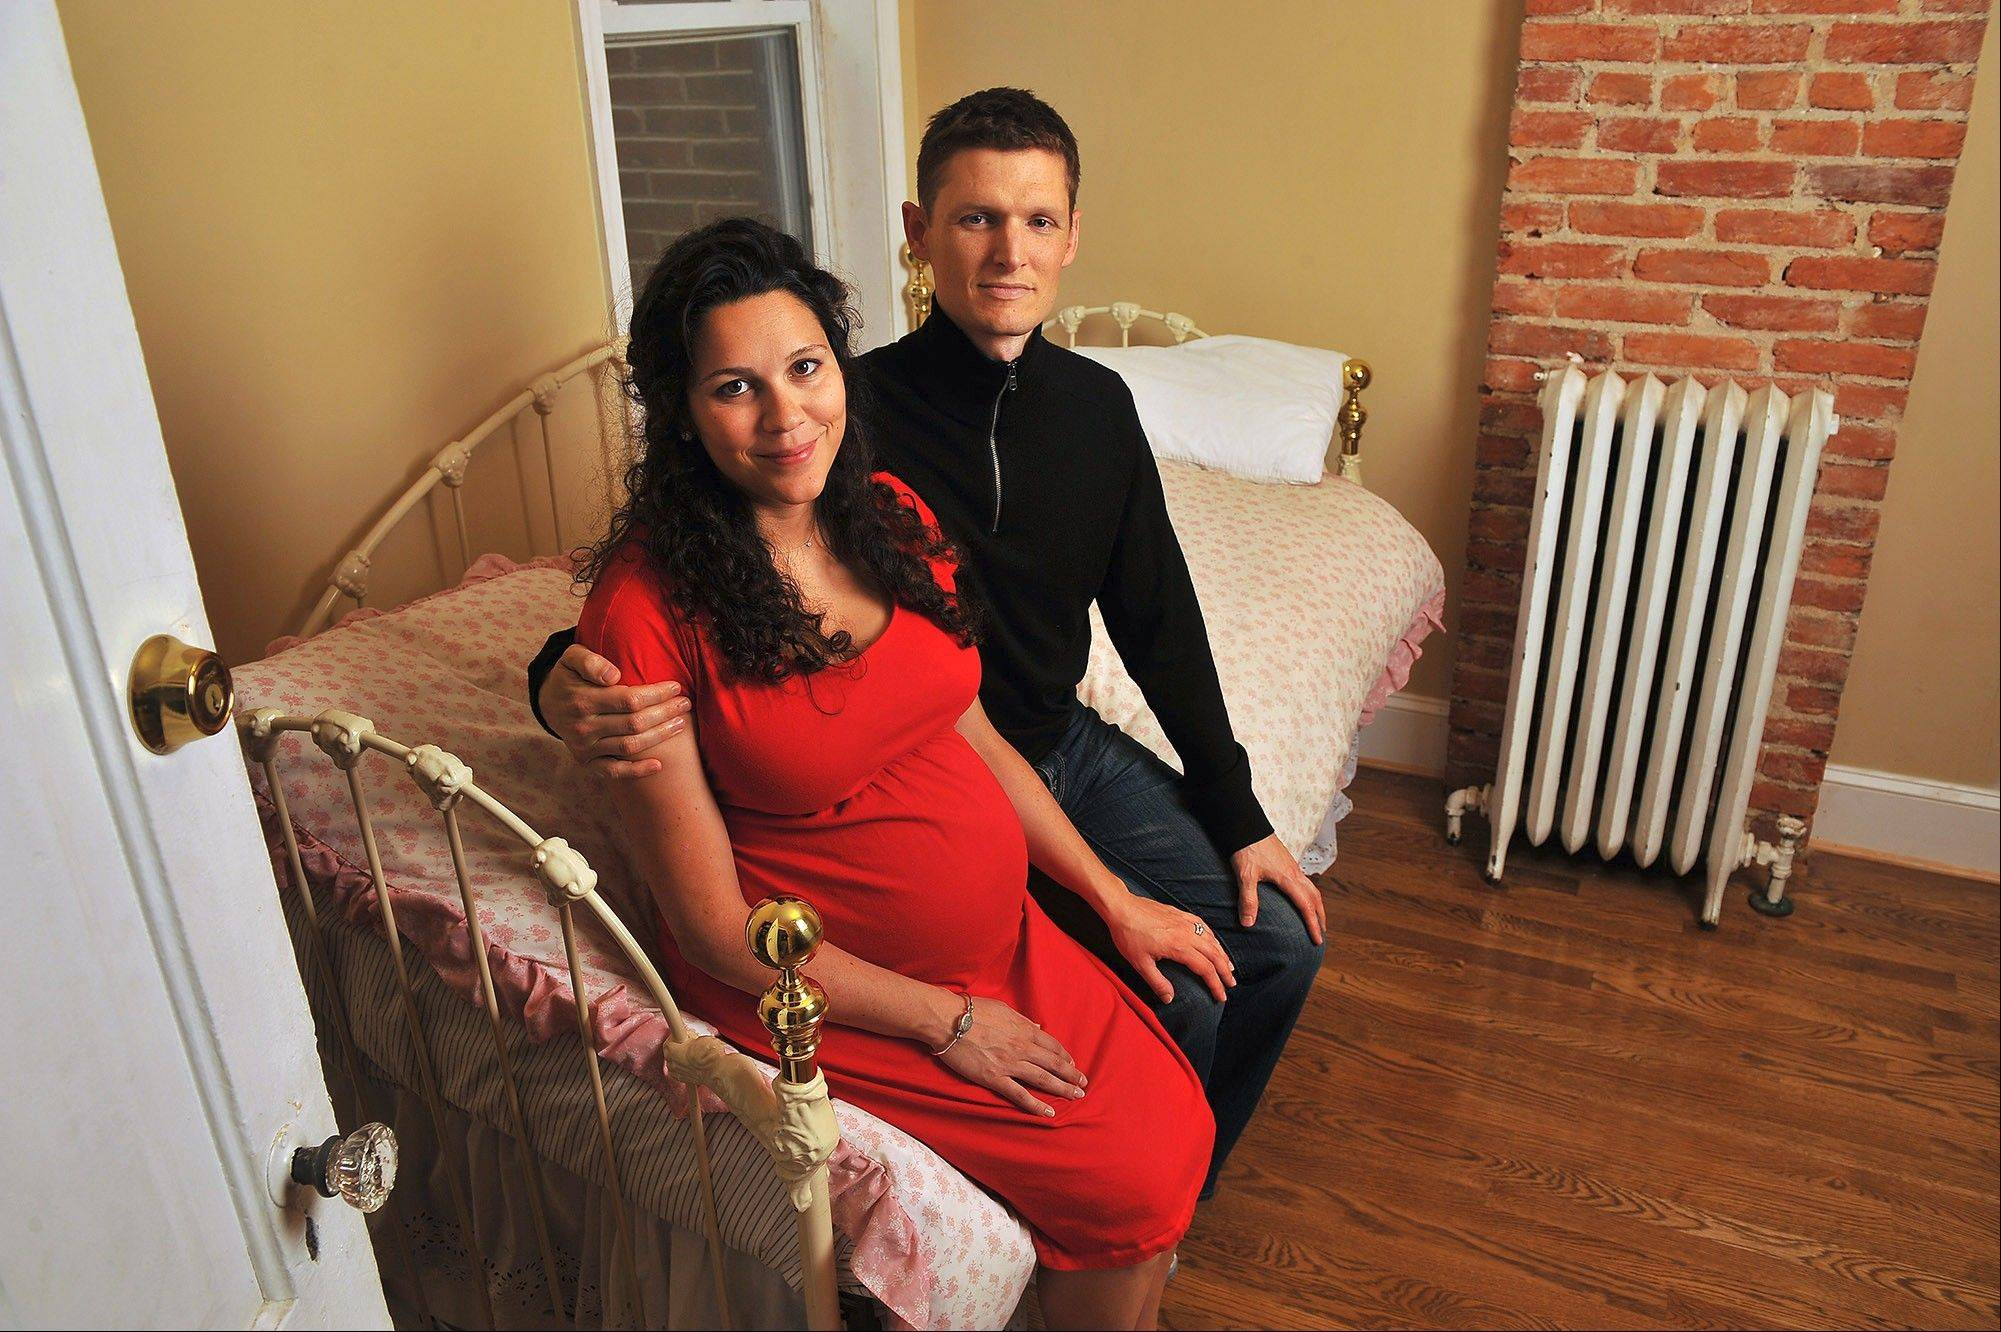 Luke Armerding and his wife, Juliet, in one of the bedrooms they renovated in their townhouse. Friends helped with part of the work.